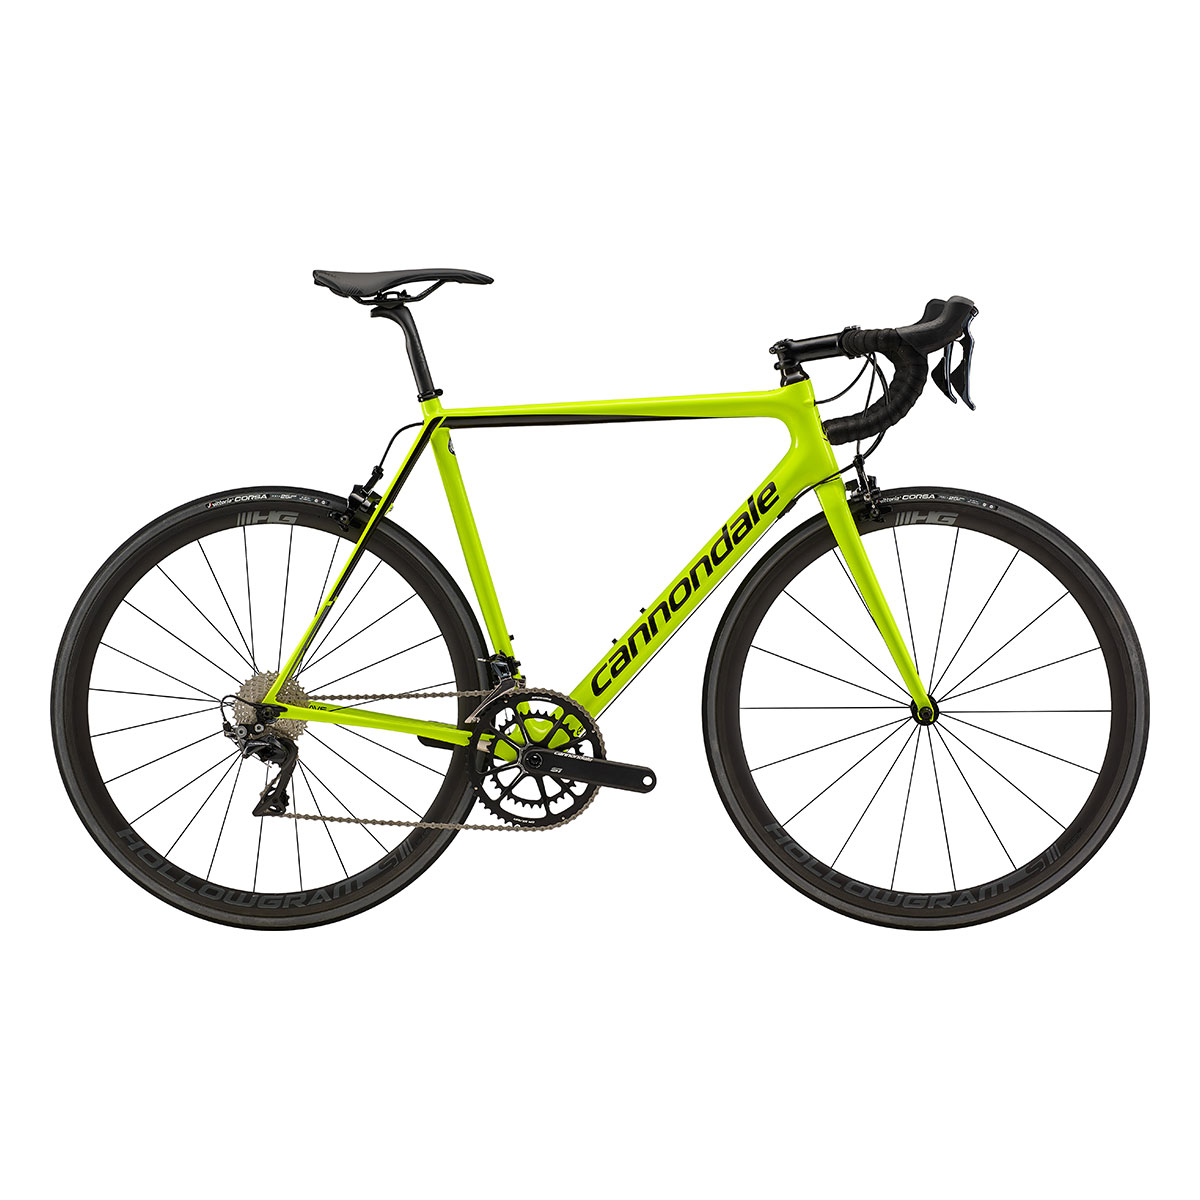 Cannondale Super6 Evo Carbon Dura Ace Cycle Tribe